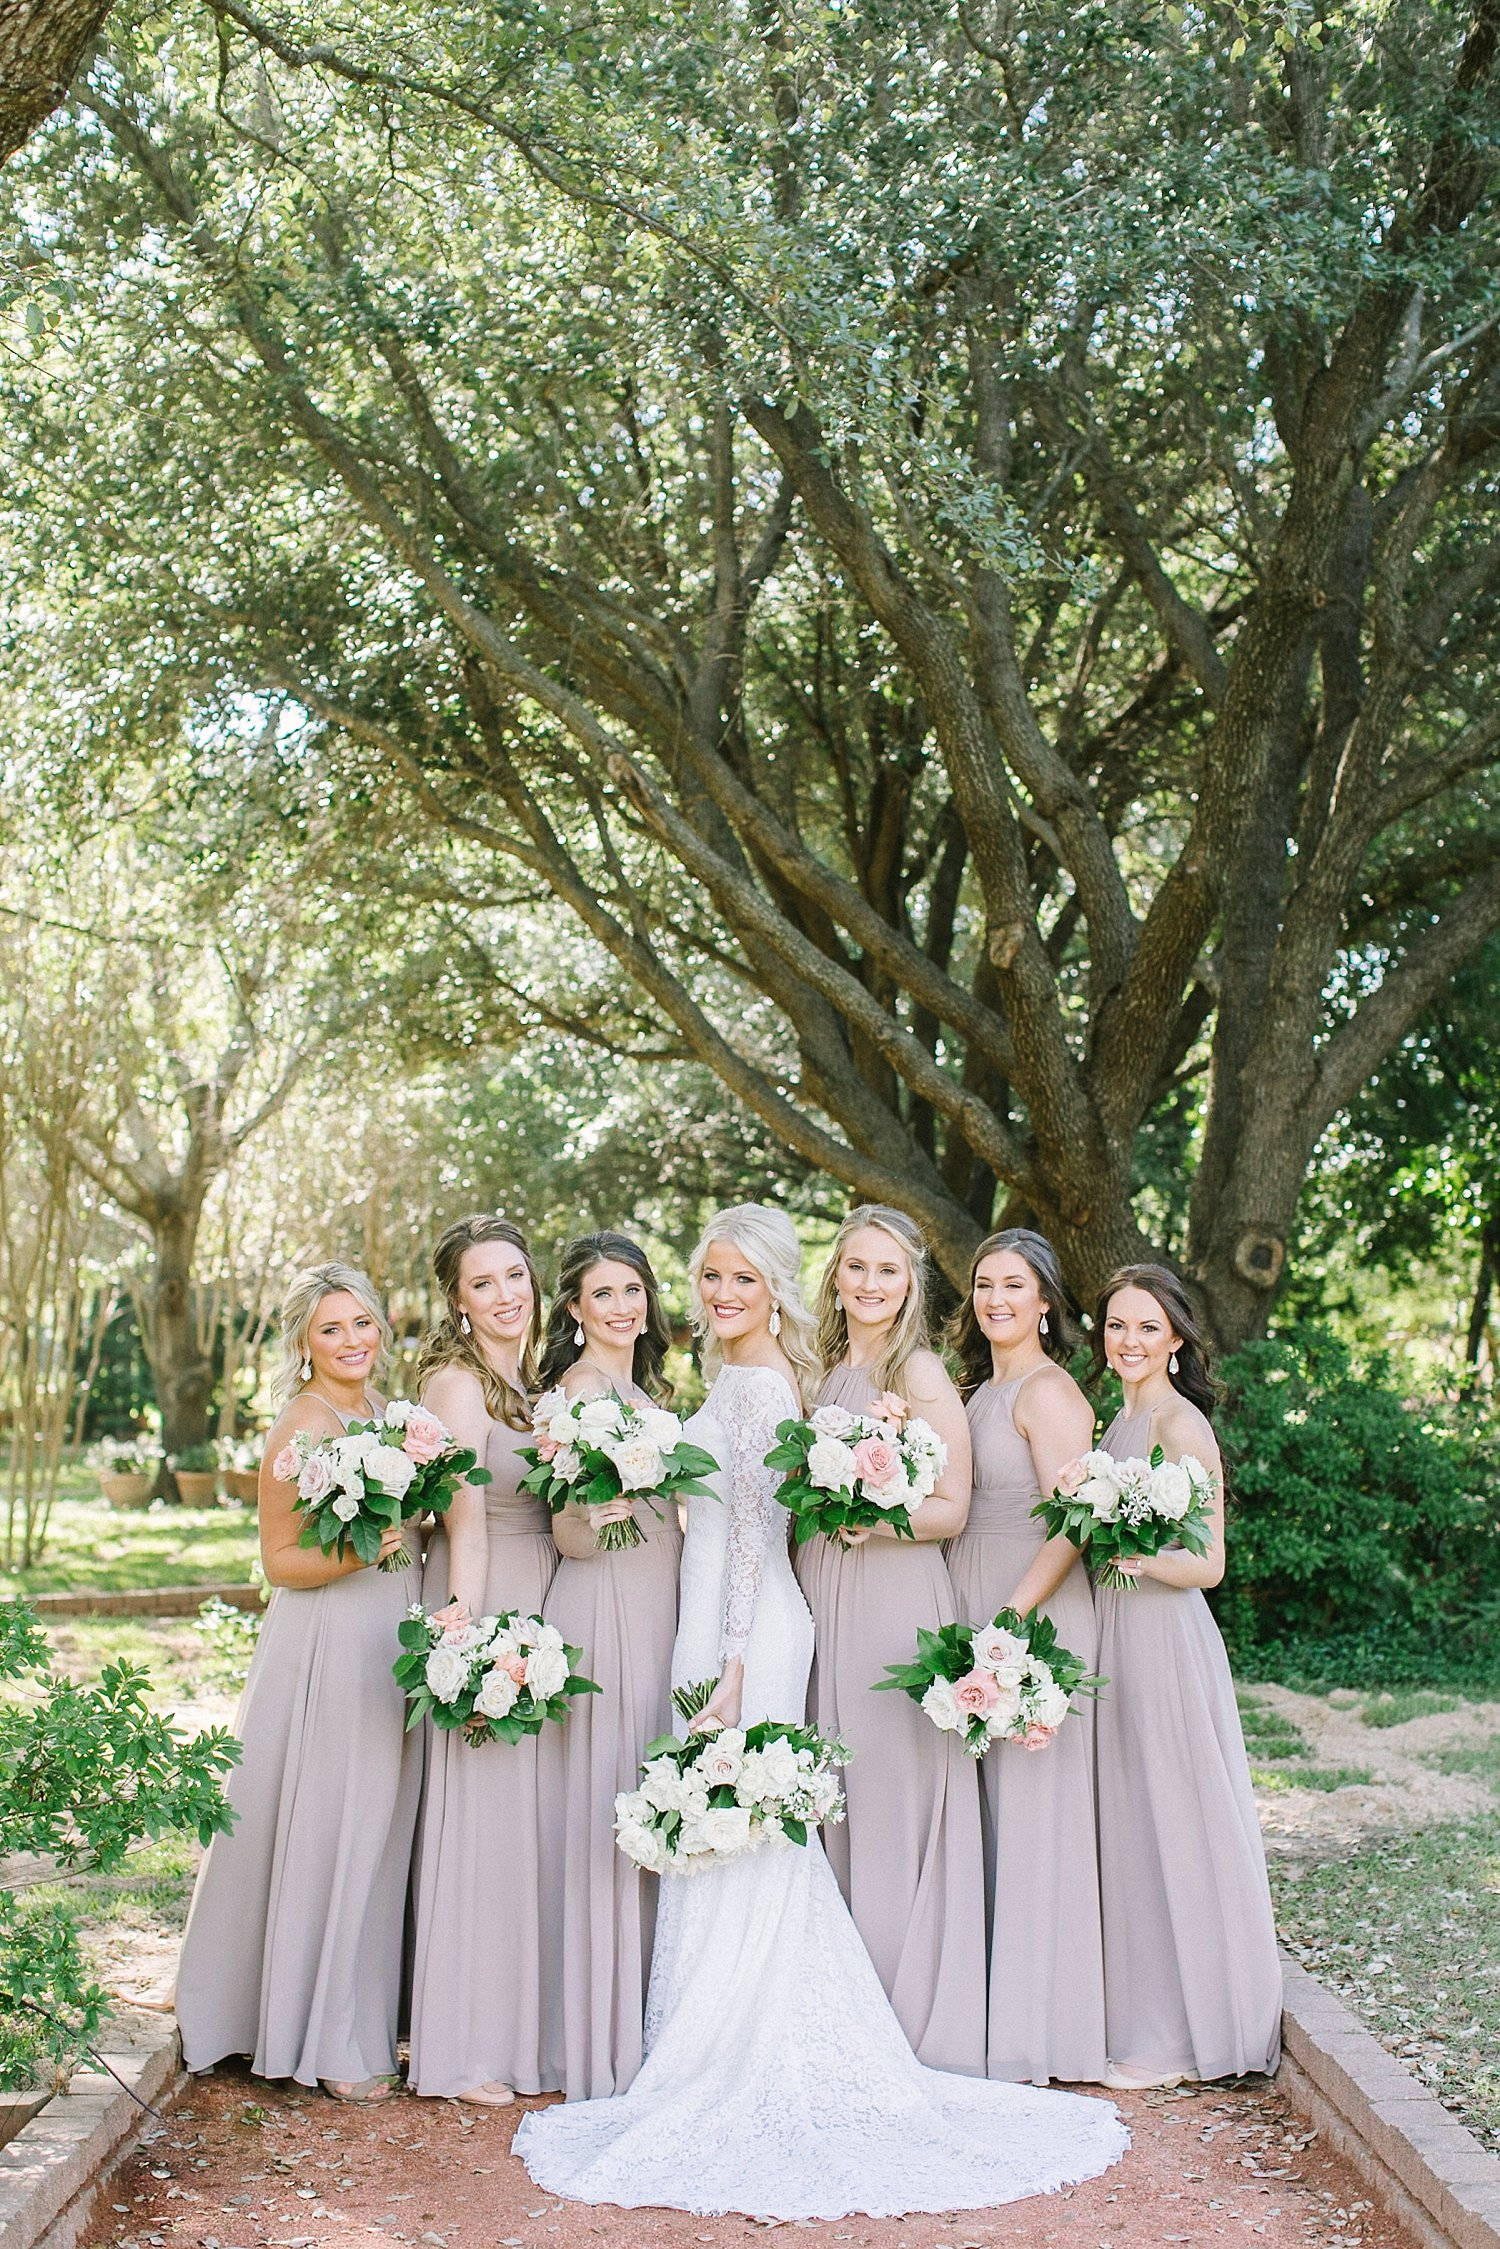 Bride and her bridesmaids in taupe dresses with white bouquets